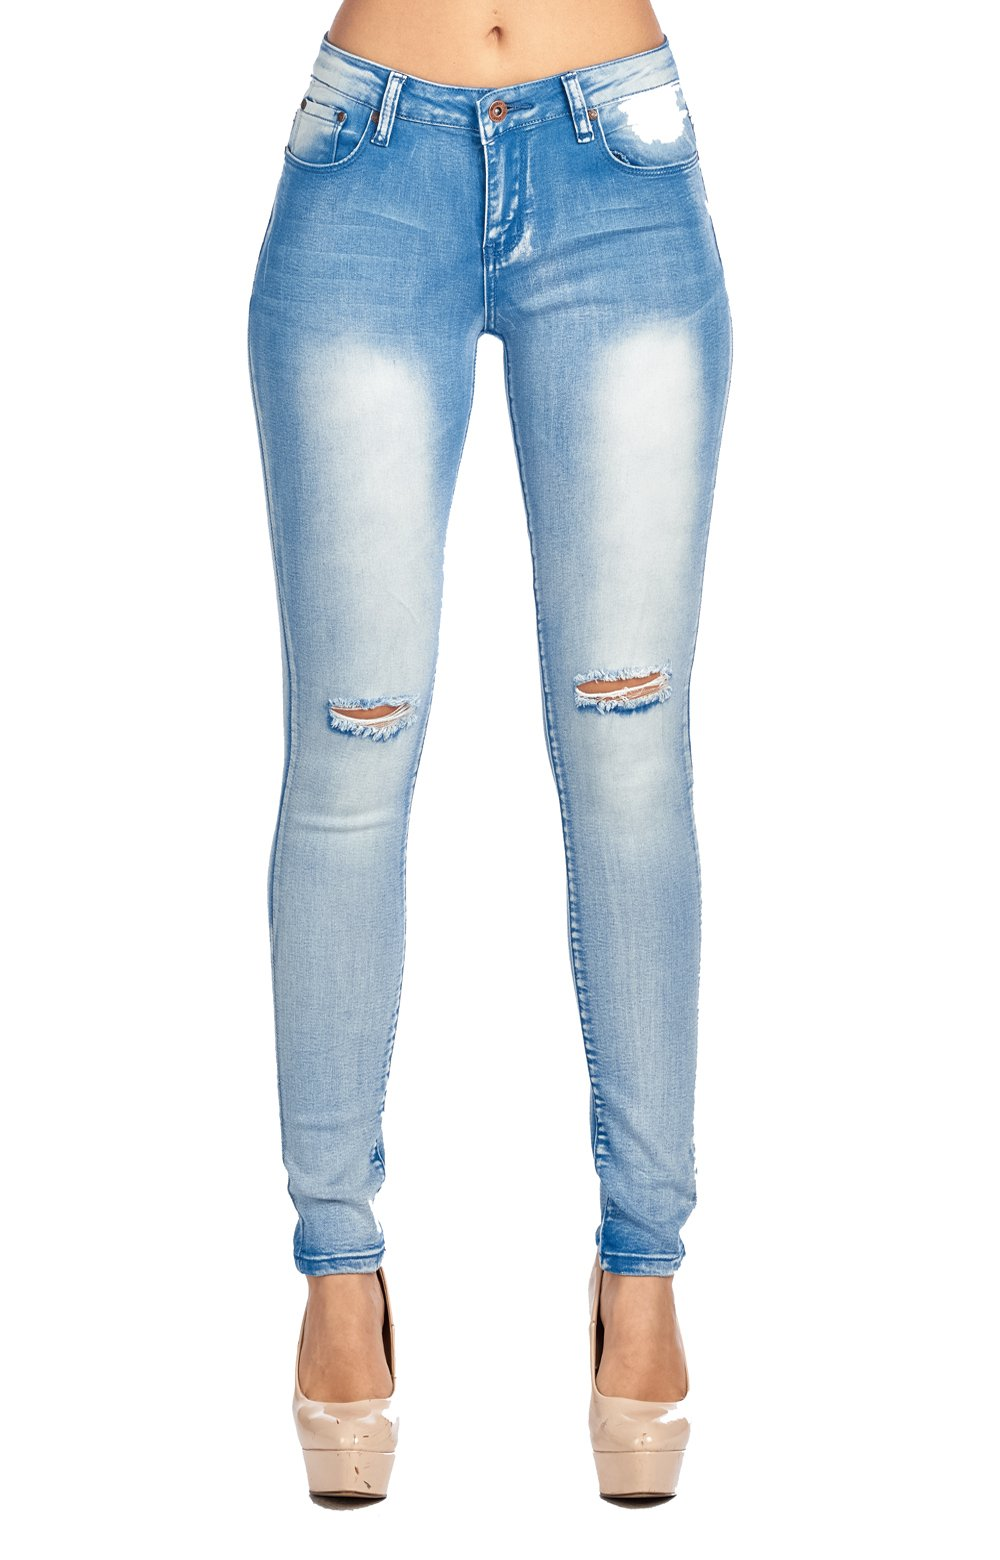 Blue Age Womes Perfect fit Well Stretch Skinny Jeans (P7441_LT_11)